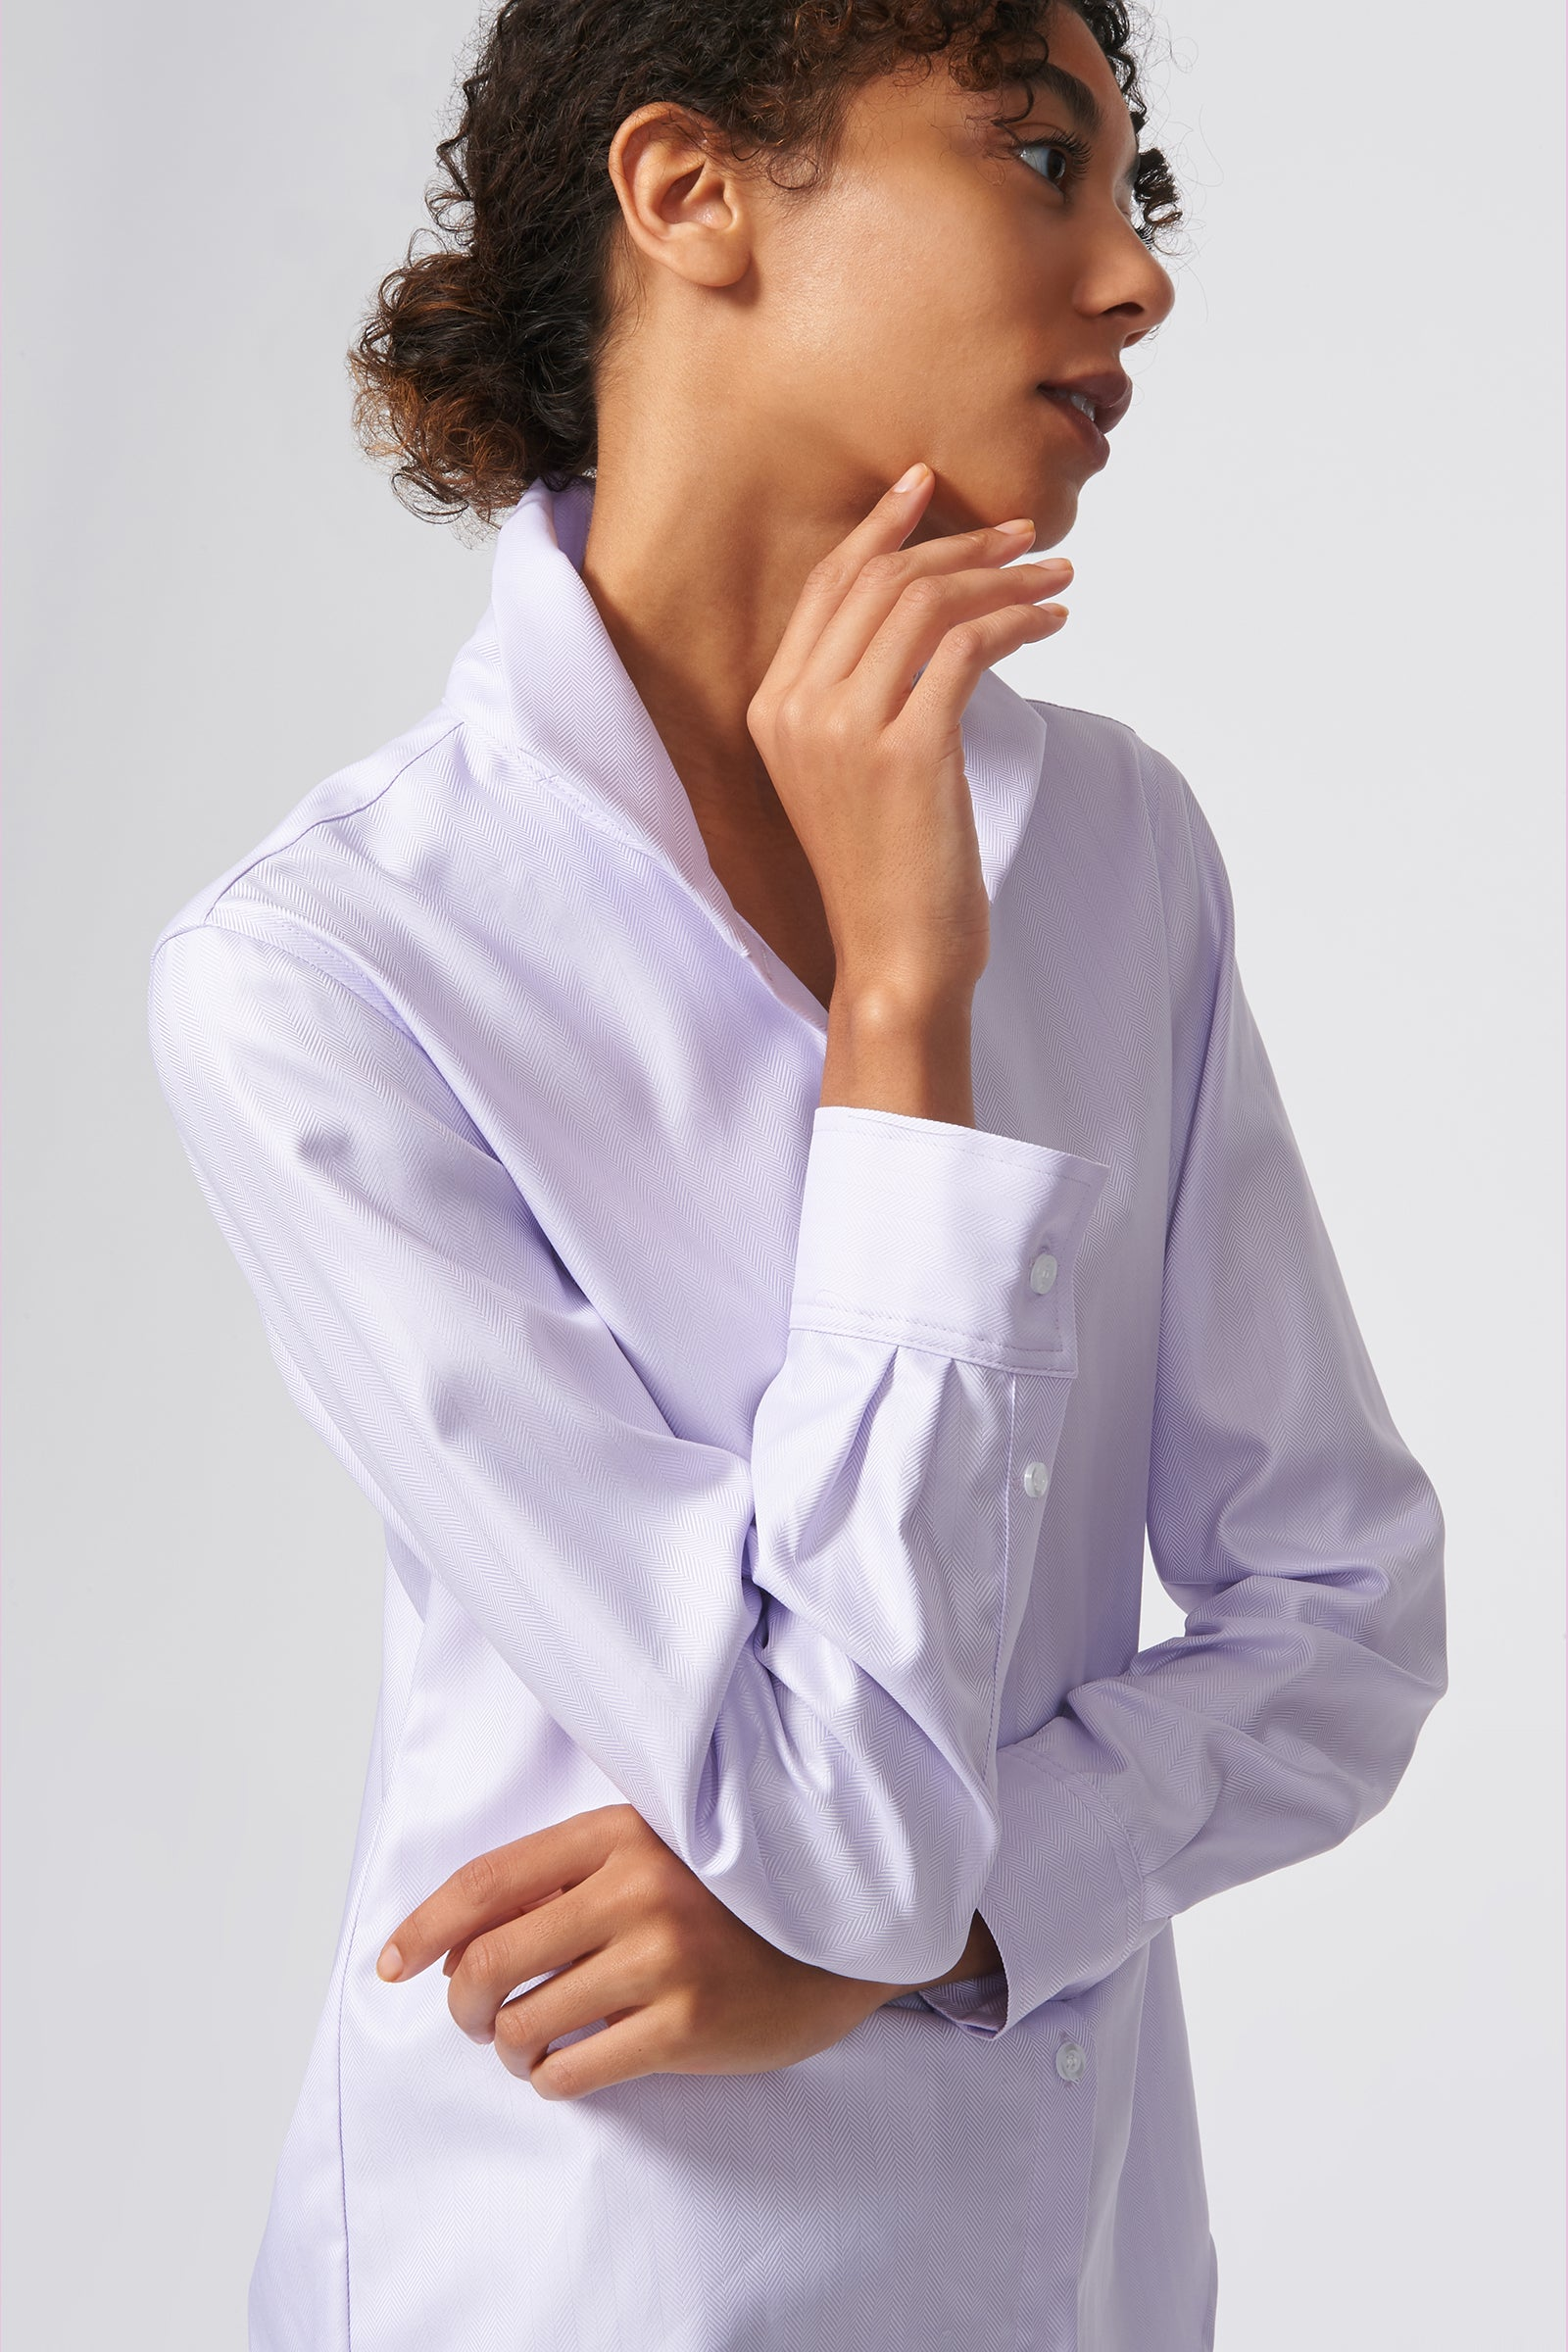 Kal Rieman Ginna Box Pleat Shirt in Lavendar Fine Herringbone on Model Side View